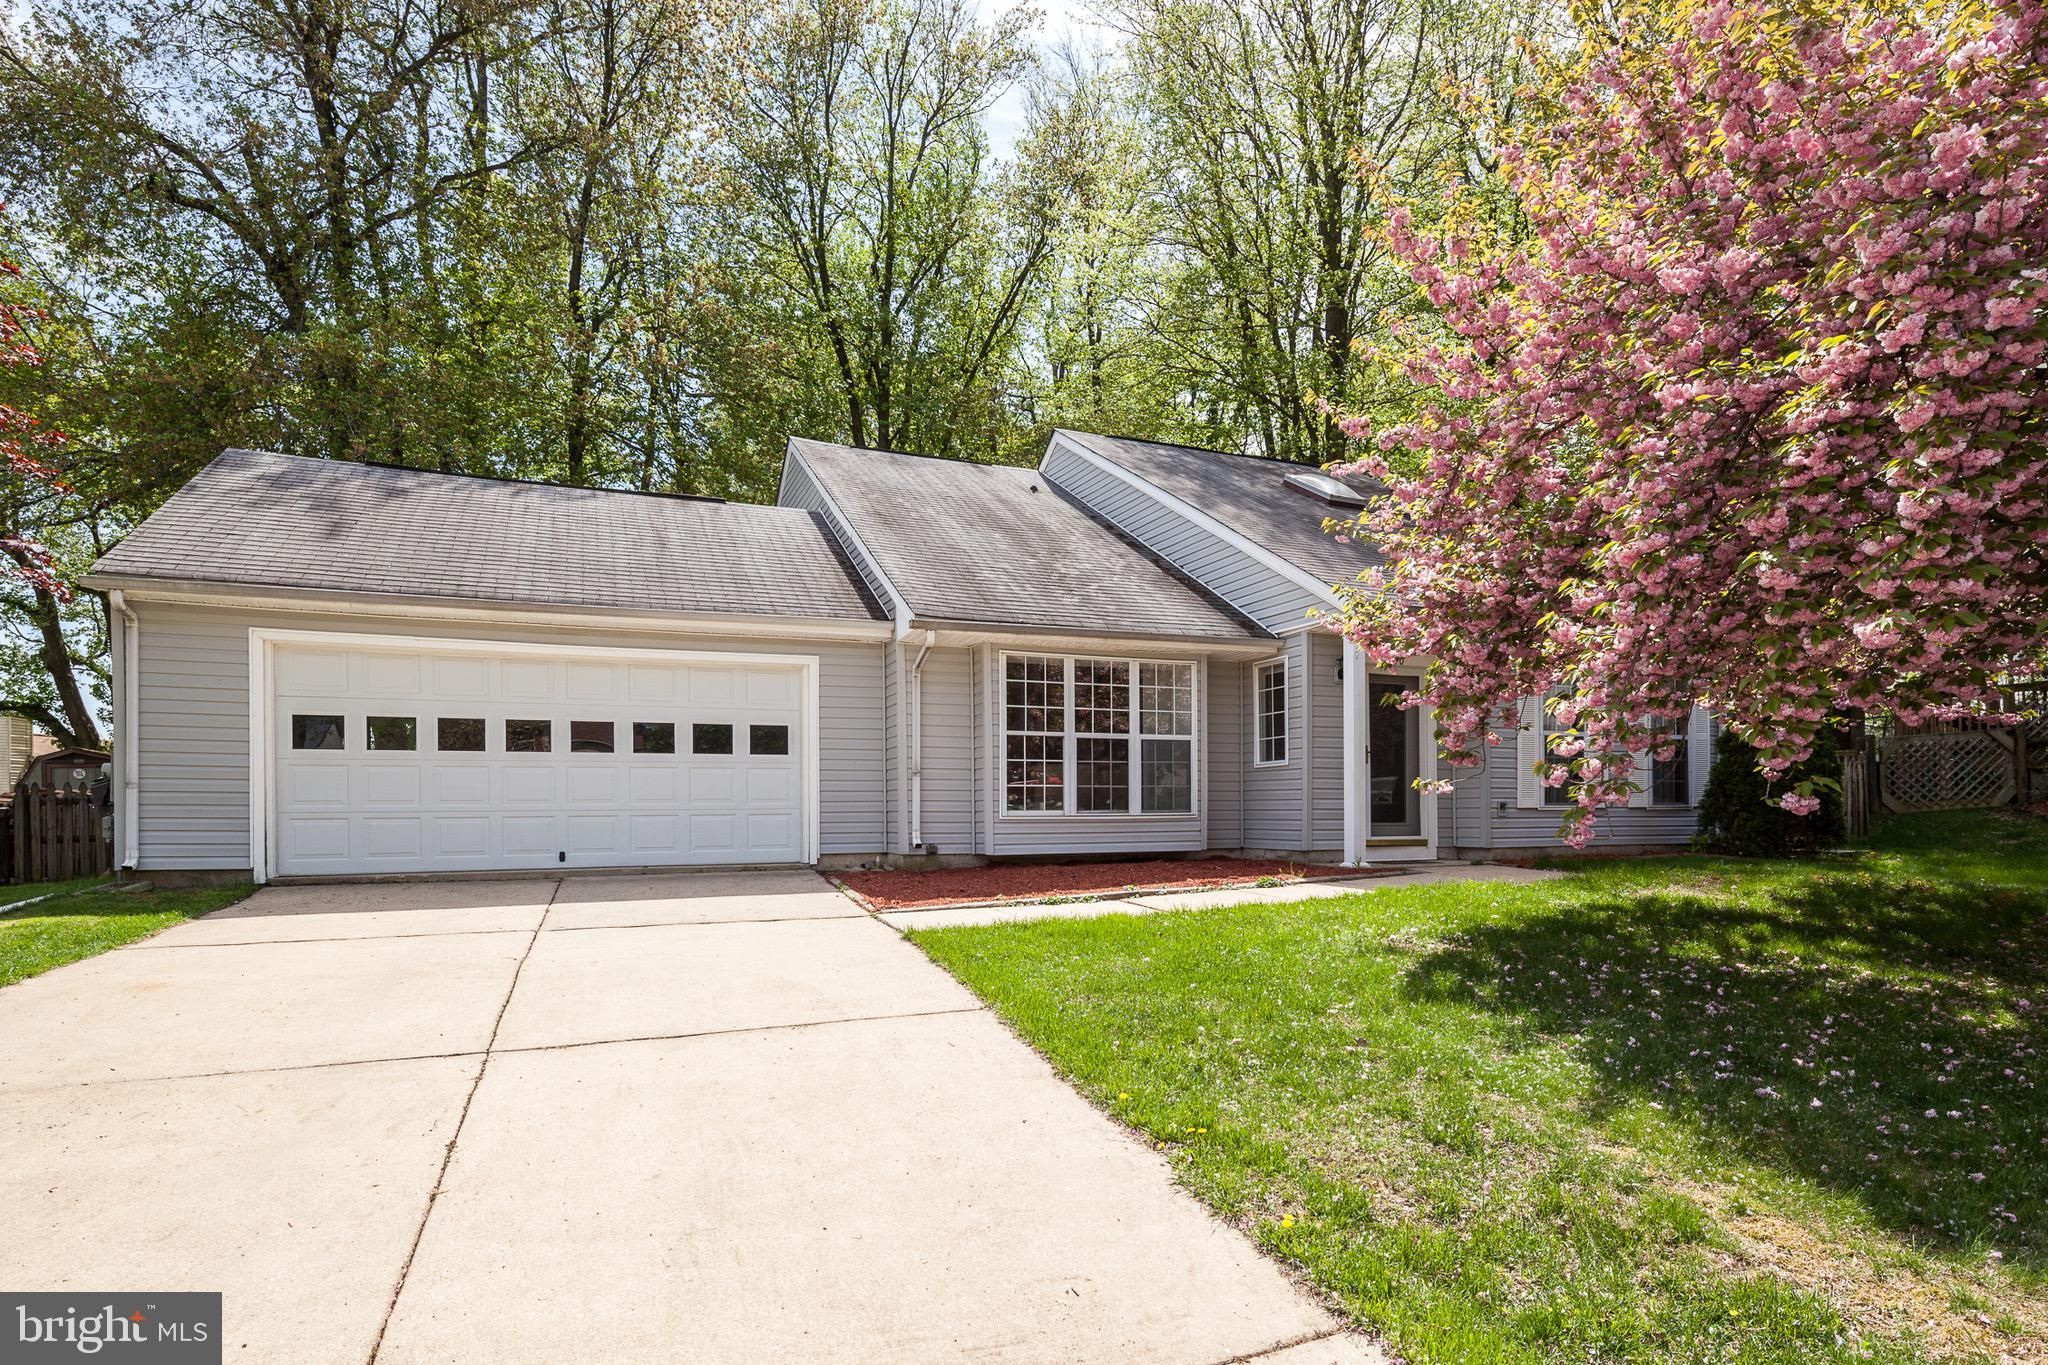 1270 COURTNEY LANE, BELCAMP, MD 21017